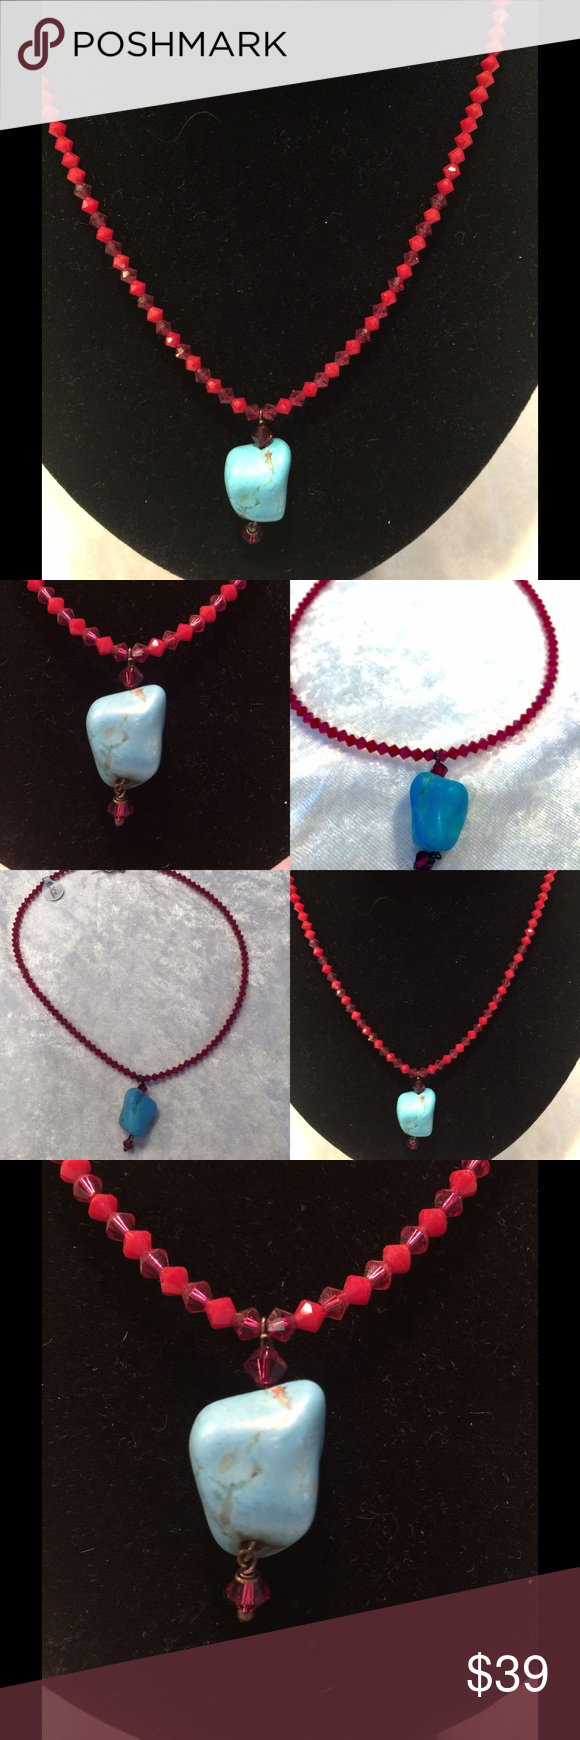 Swarovski Crystal ruby and turquoise necklace Hand Made by local designer, beautiful ruby and turquoise necklace with silver closure. Hand Made, original $119.00 Jewelry Necklaces